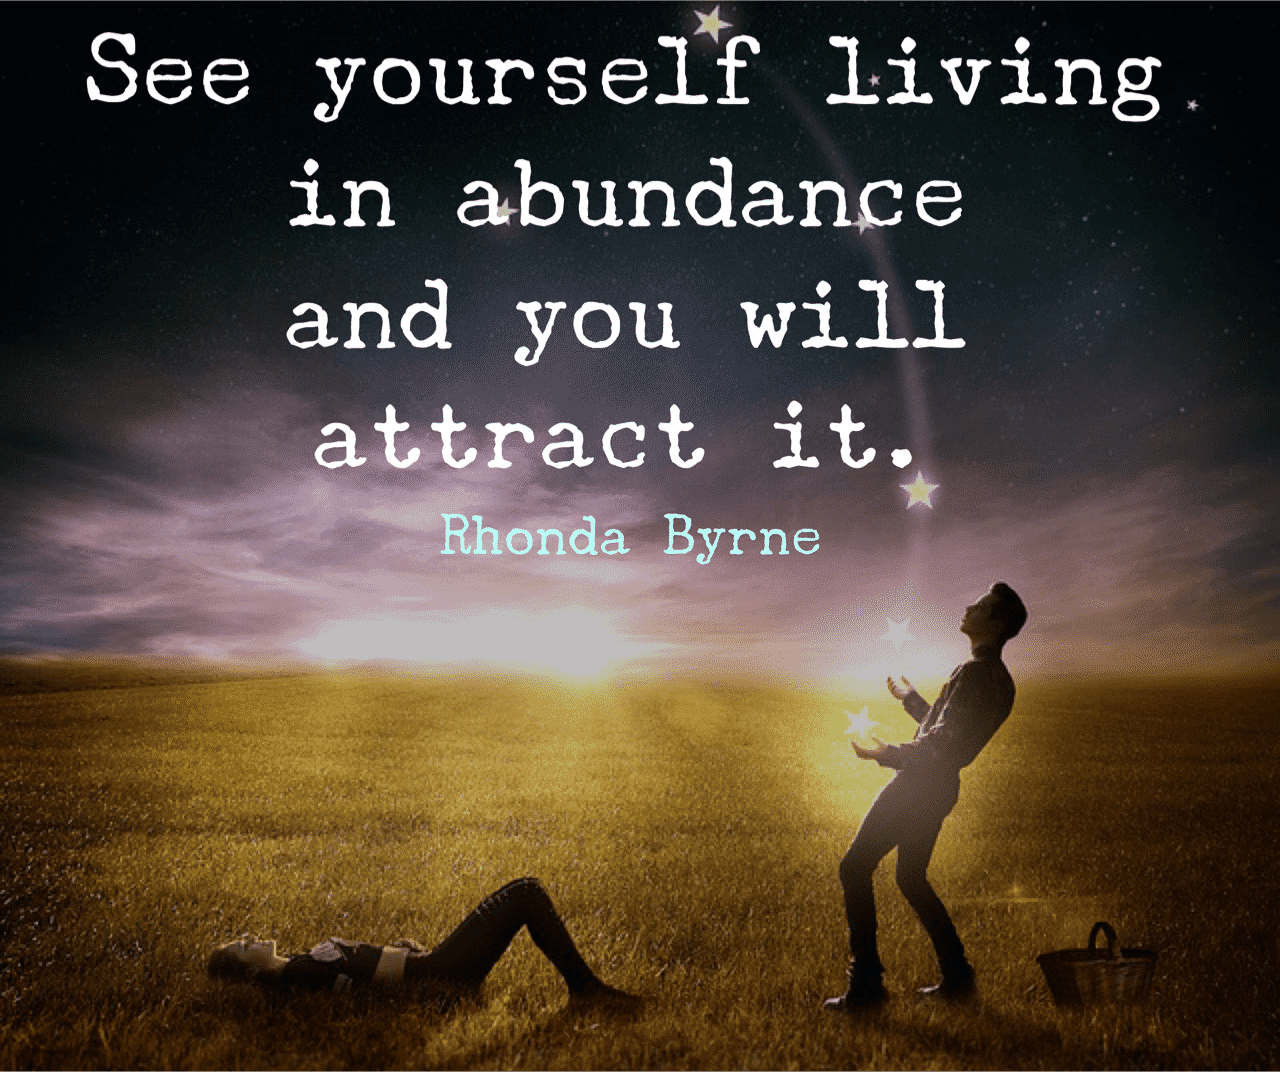 Law Of Attraction Quotes The Very Best Law Of Attraction Quotes